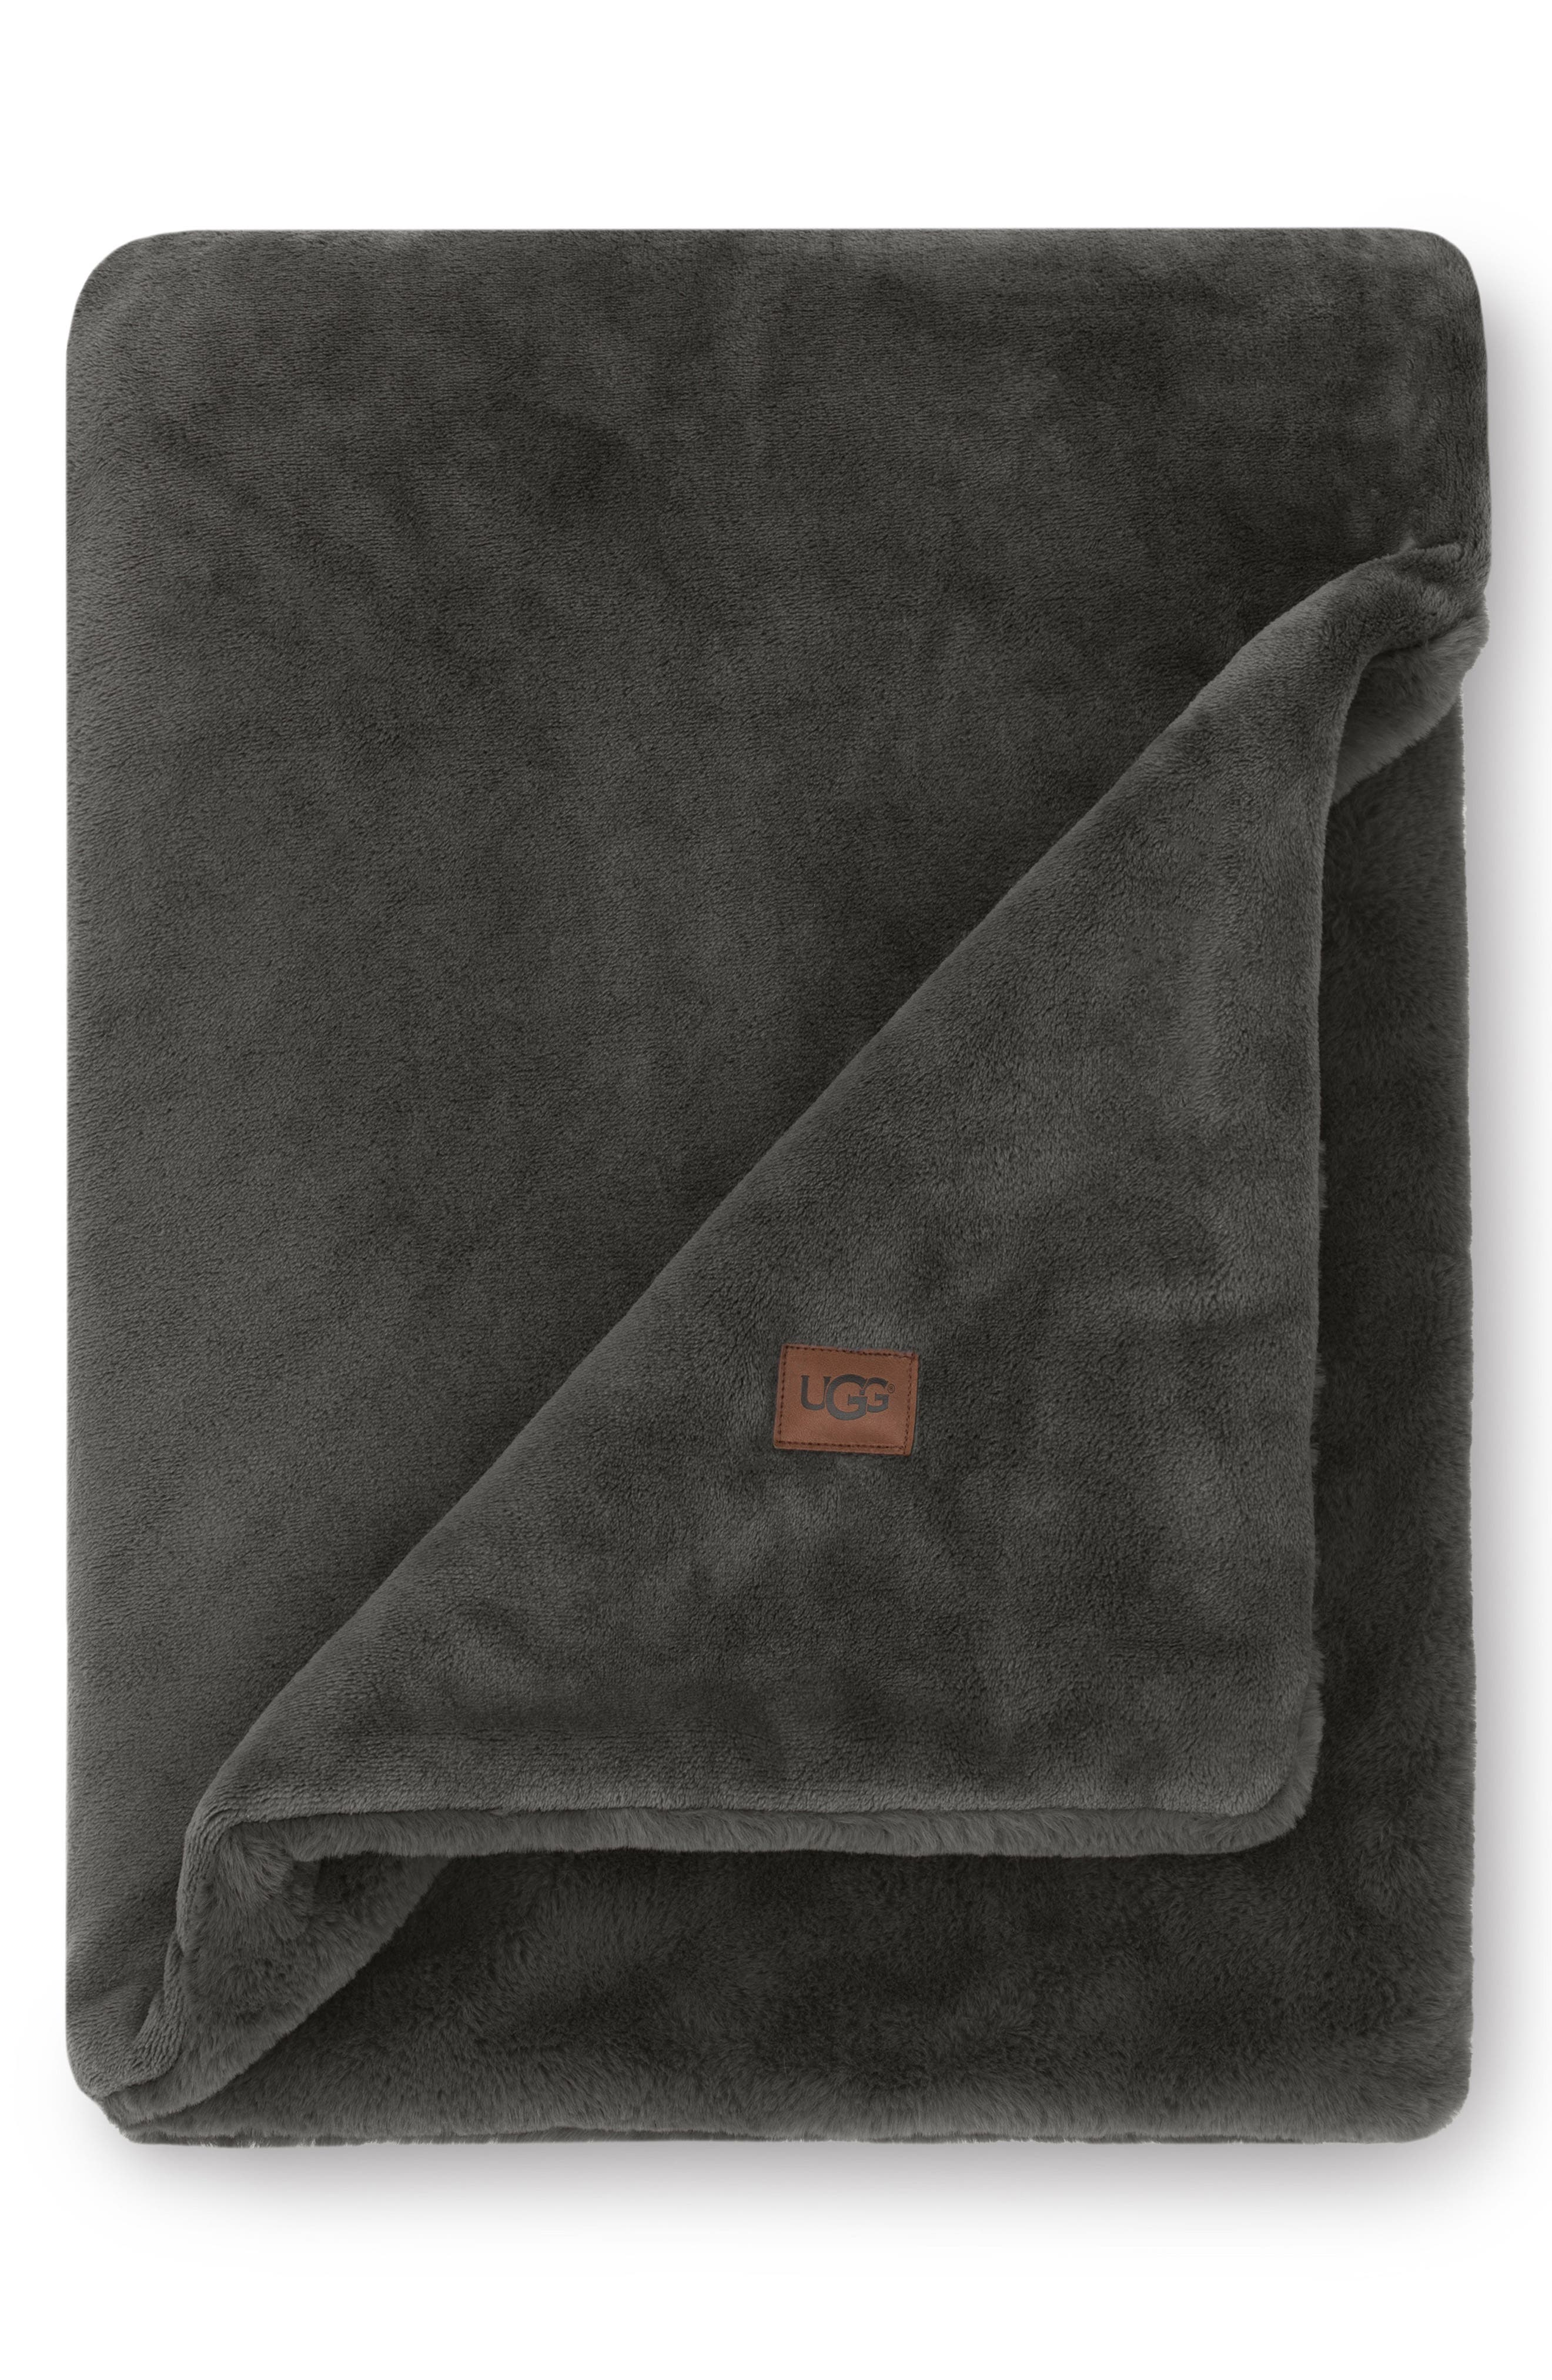 UGG<SUP>®</SUP>, Coastline Plush Throw, Main thumbnail 1, color, CHARCOAL